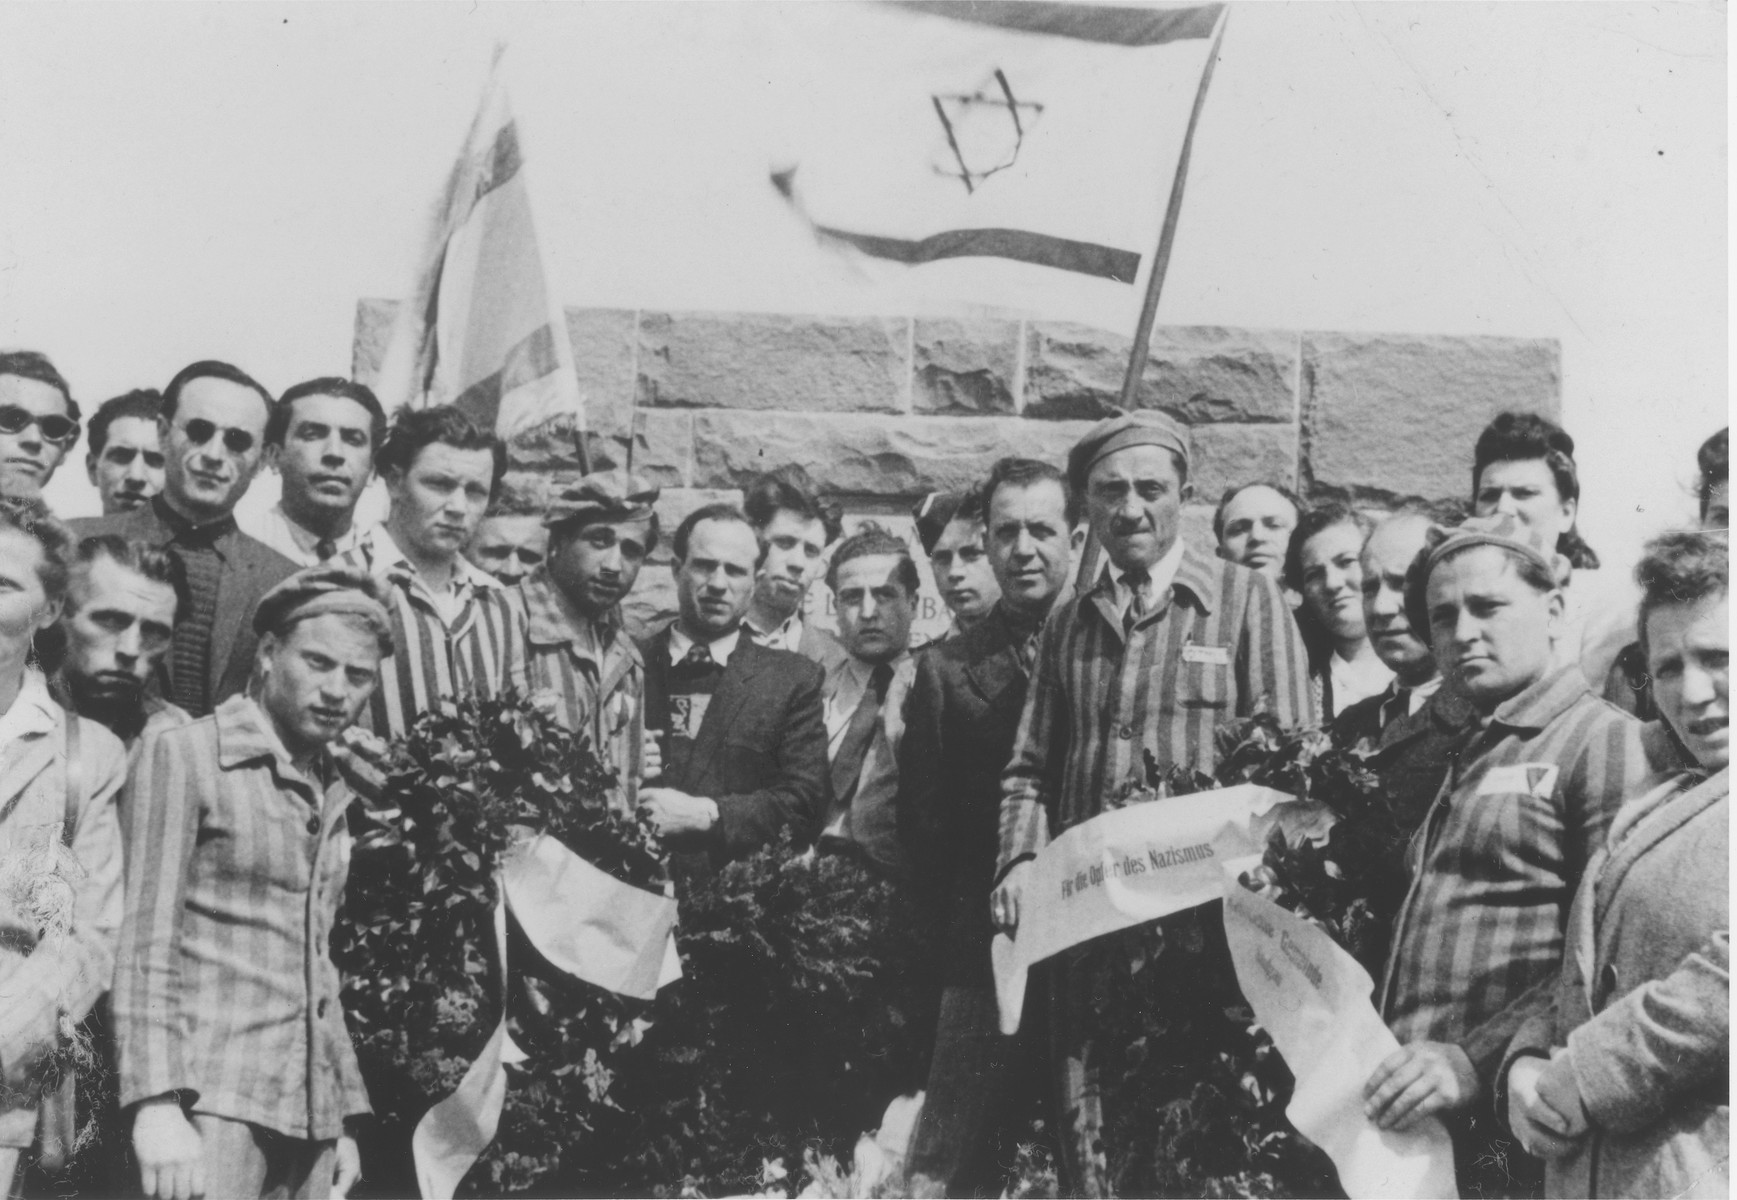 On the occasion of the first anniversary of the liberation of the Dautmergen concentration camp, Jewish survivors wearing concentration camp uniforms and carrying Zionist flags, bring wreaths to lay at the site.  Among those pictured is Kiwa Dajches (center, wearing light colored suit and dark tie).  Dautmergen, a subcamp of Natzweiler, operated from August 1944 until April 1945.